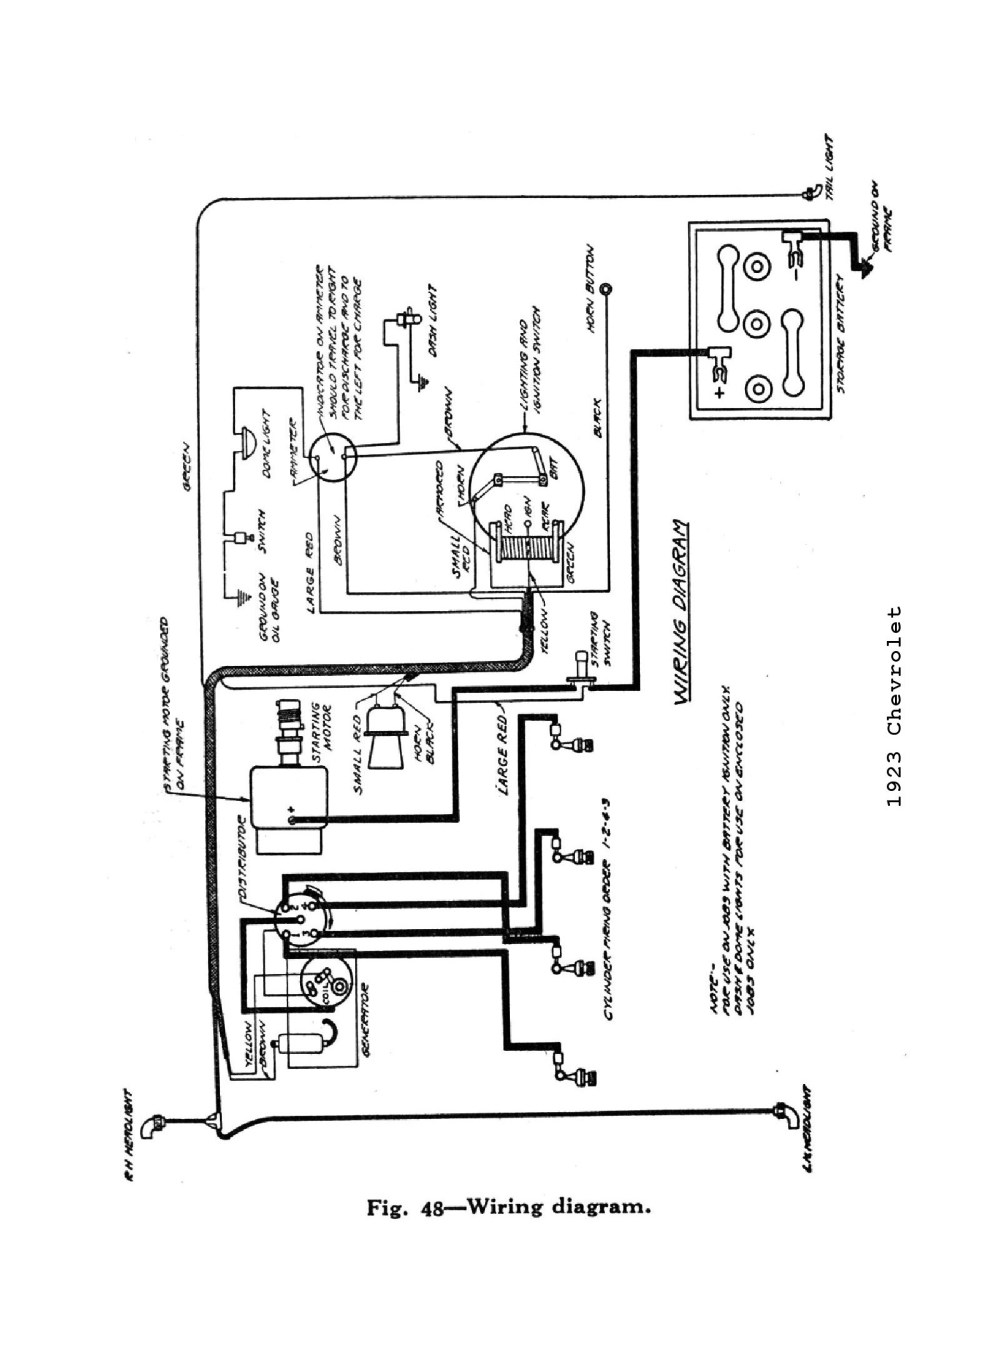 medium resolution of chevy wiring diagrams 7 plug truck wiring diagram truck wiring diagram